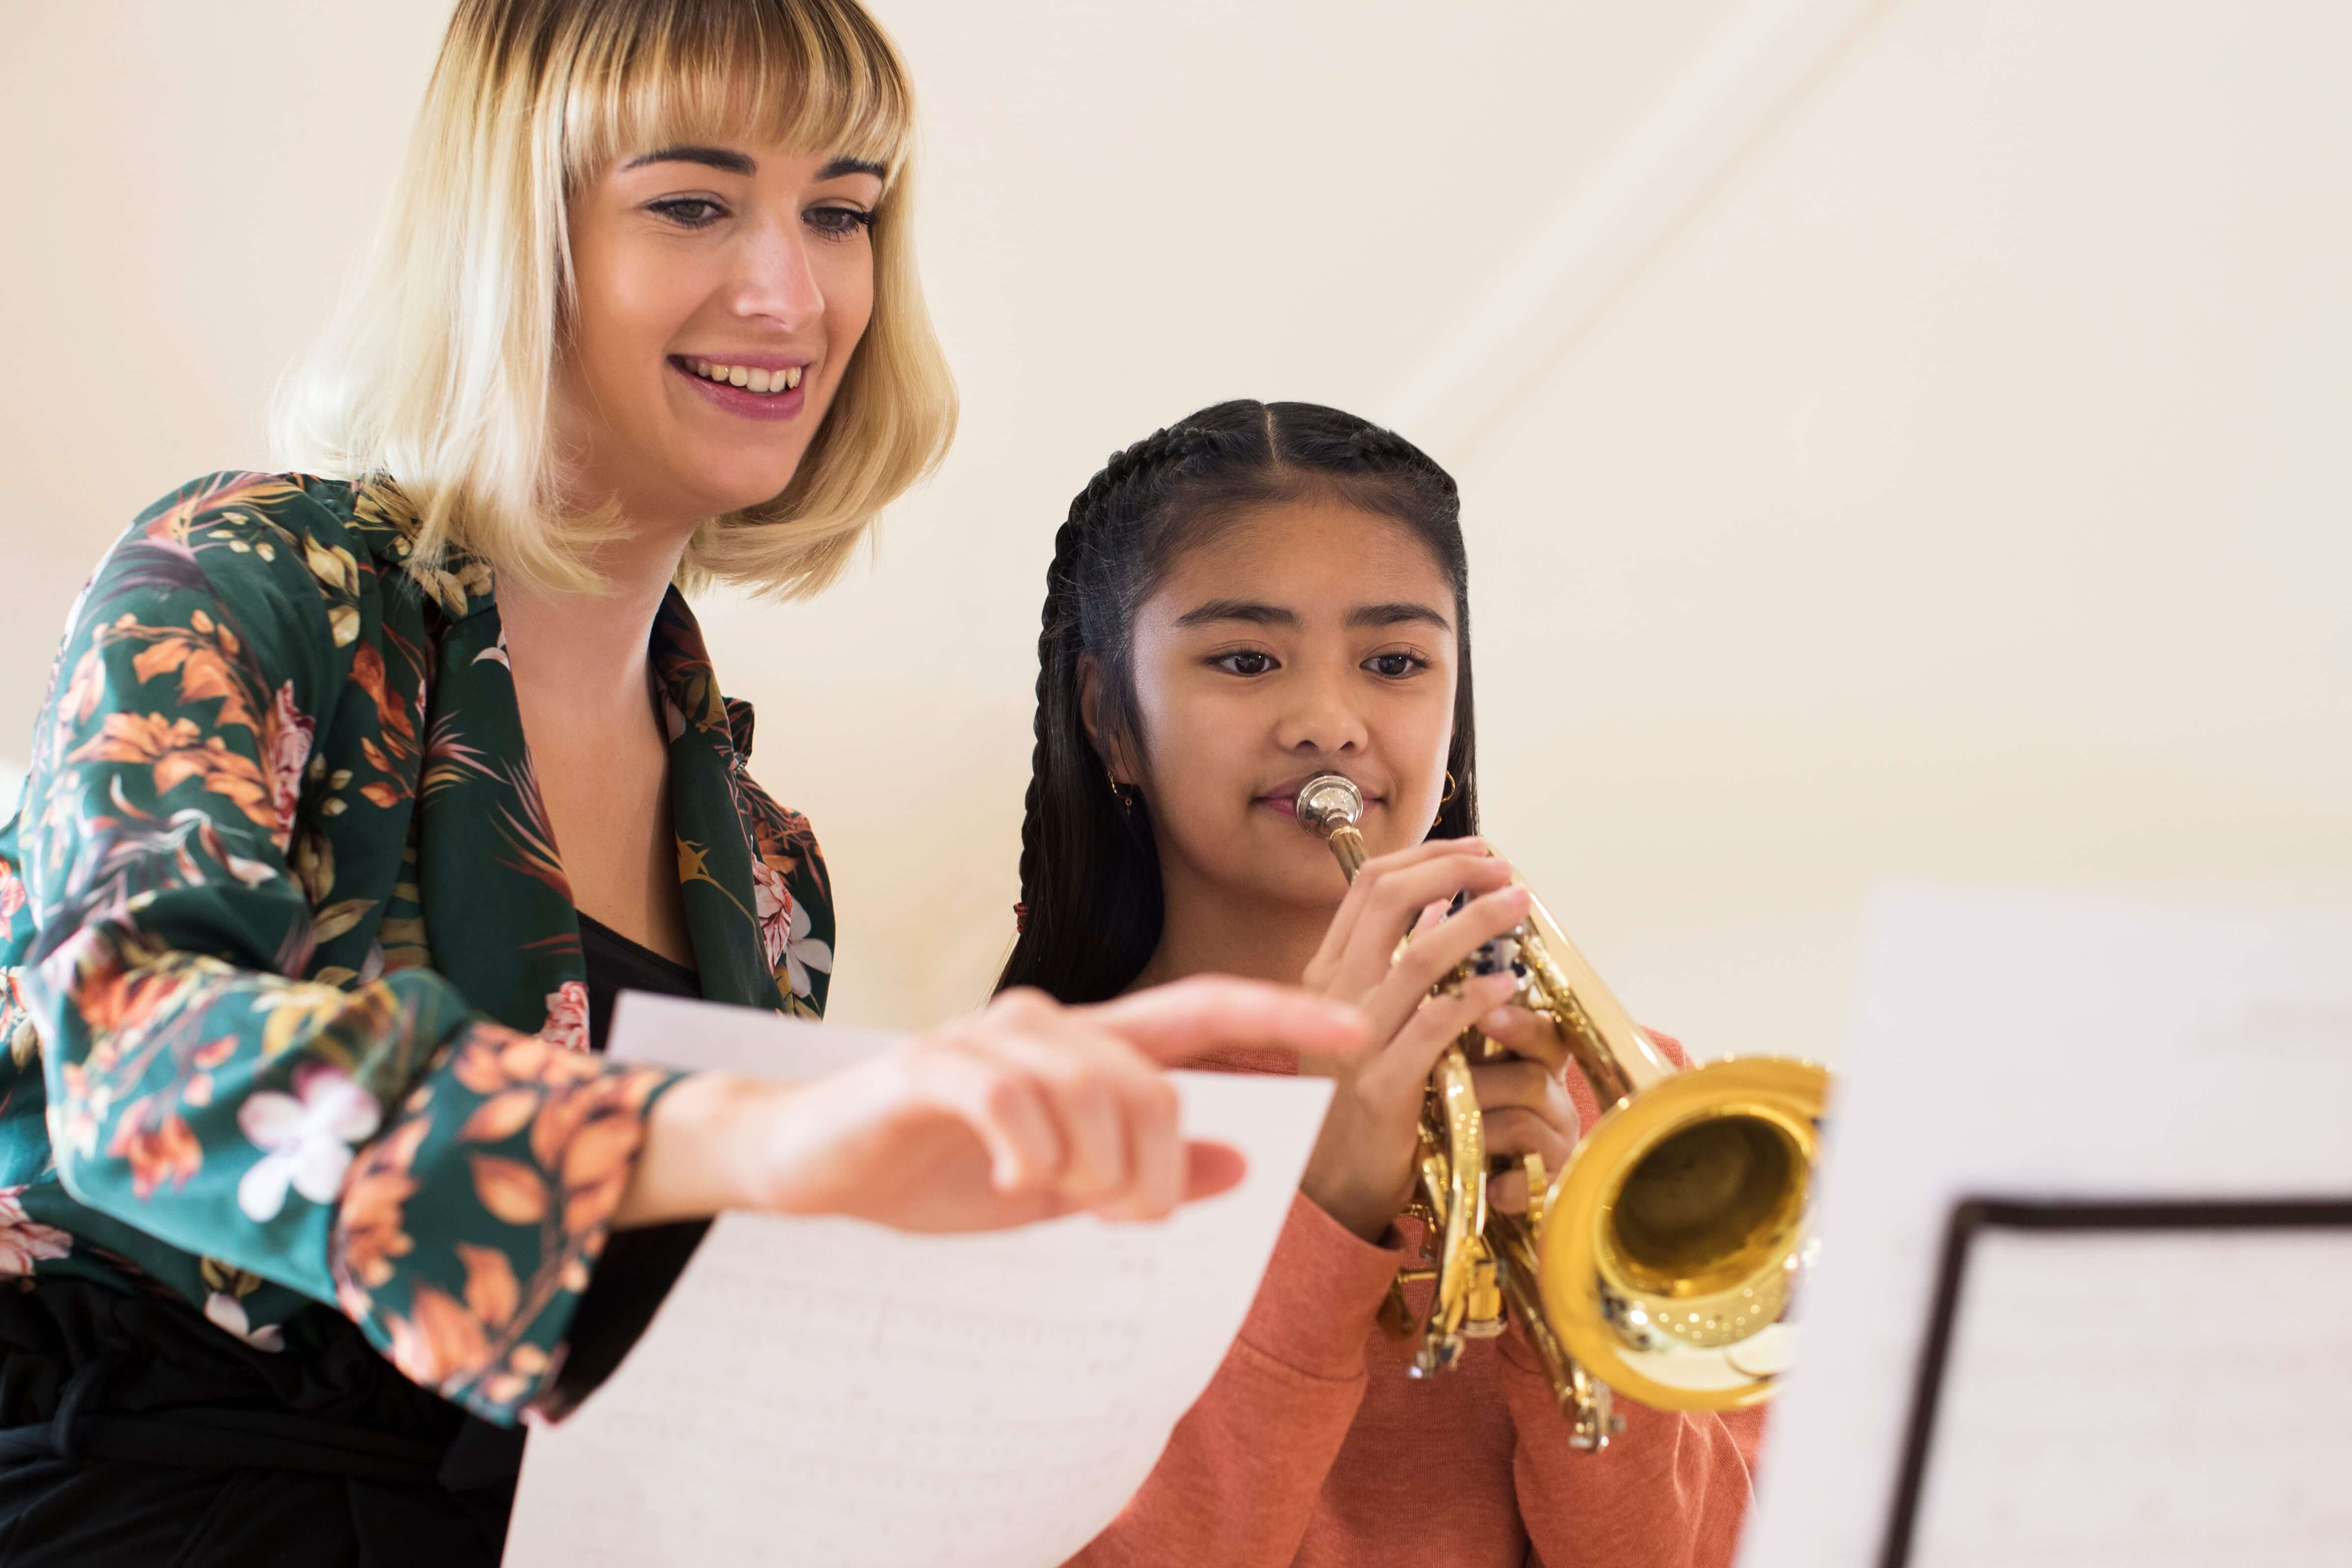 Instructor teaching her student Trumpet lessons